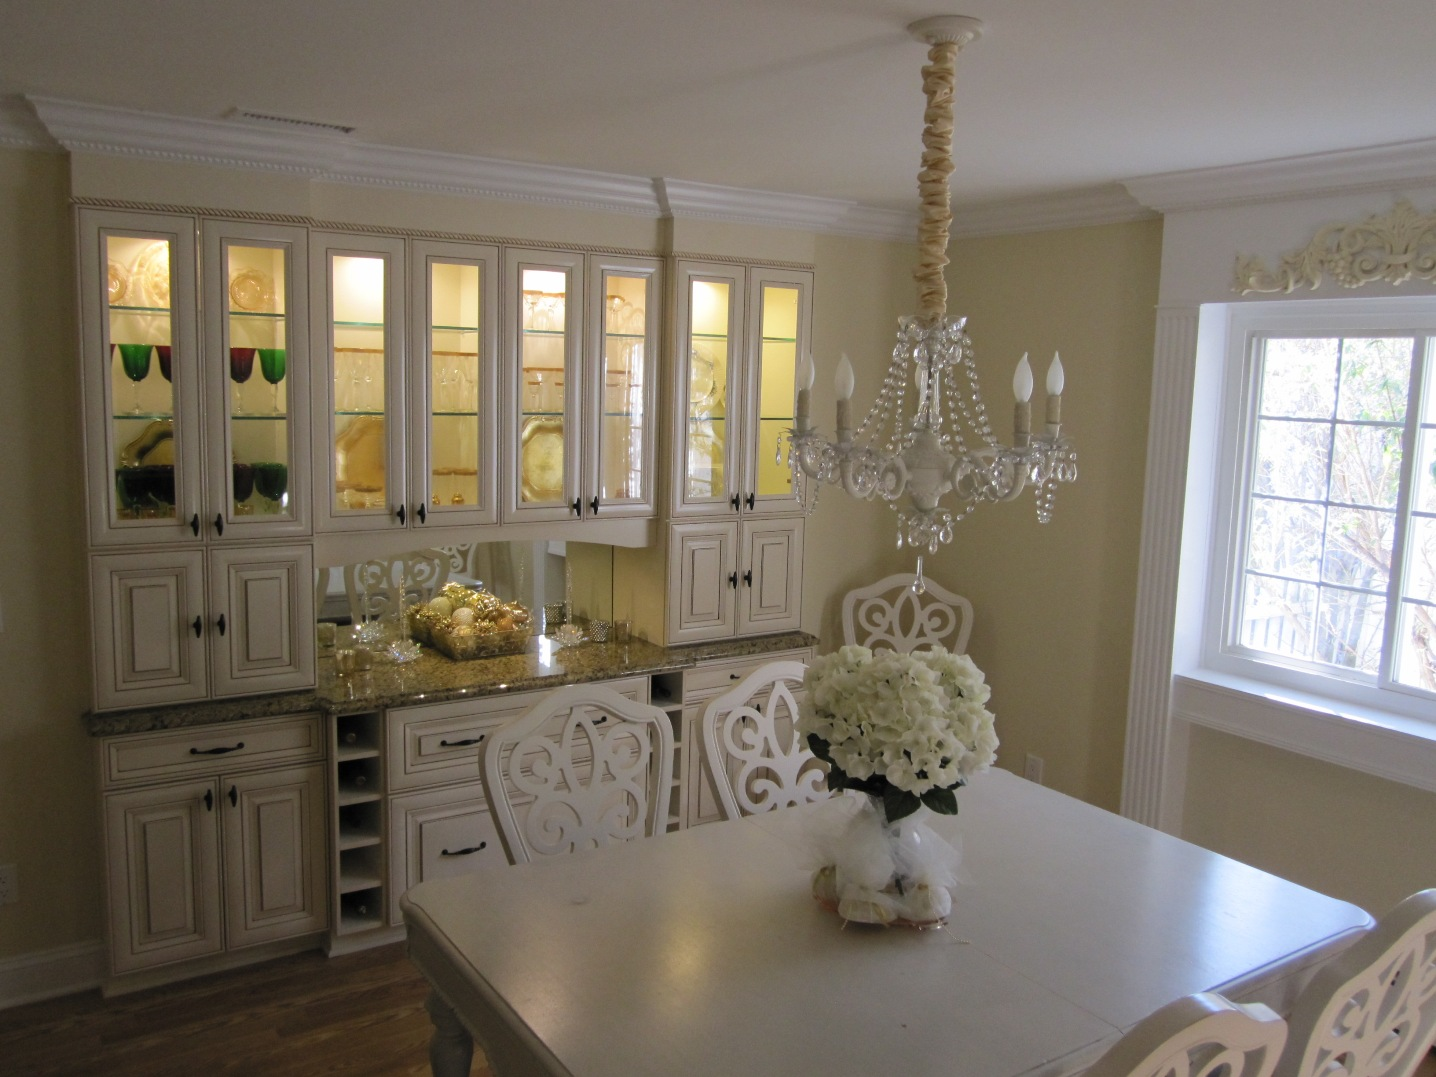 Dining room cabinets a necessity for organized elegant for Dining room looks